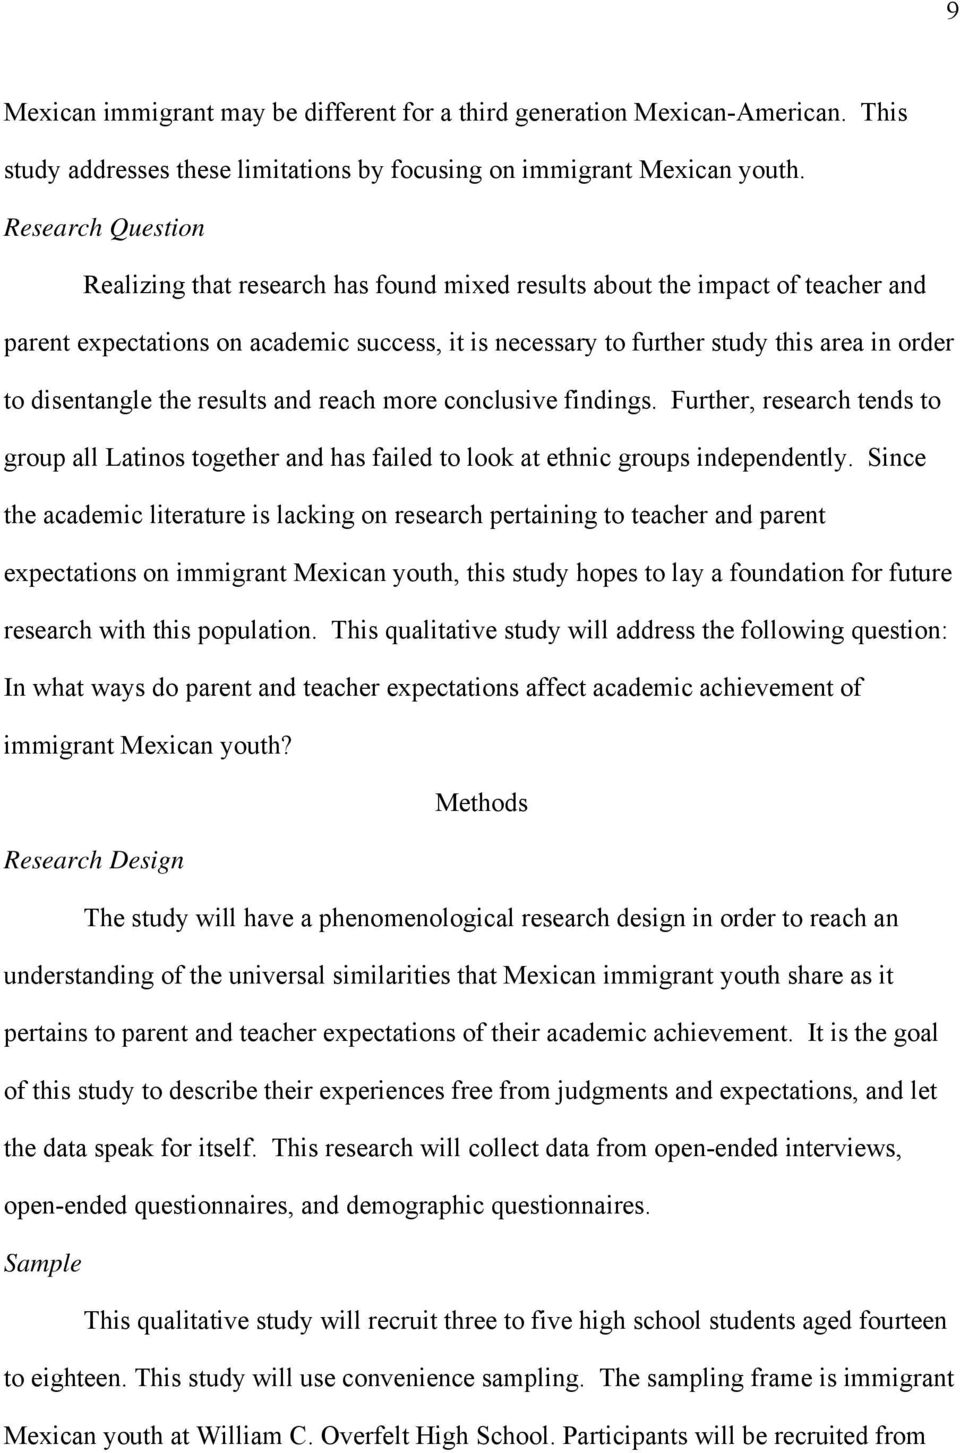 disentangle the results and reach more conclusive findings. Further, research tends to group all Latinos together and has failed to look at ethnic groups independently.